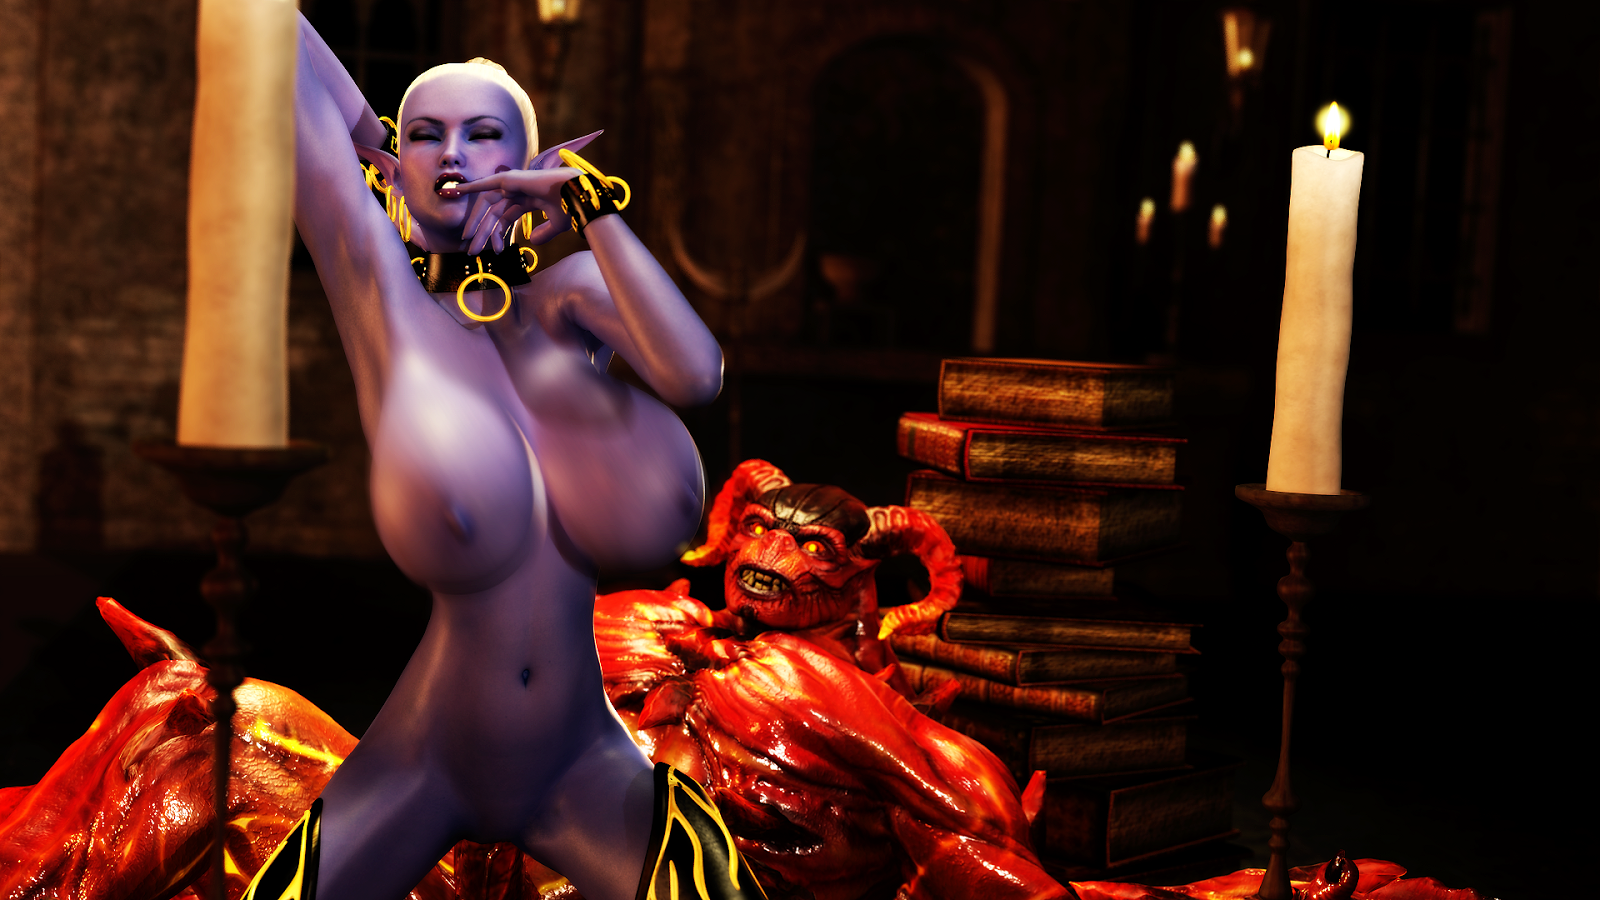 Hot dark elf xxx hentia pic